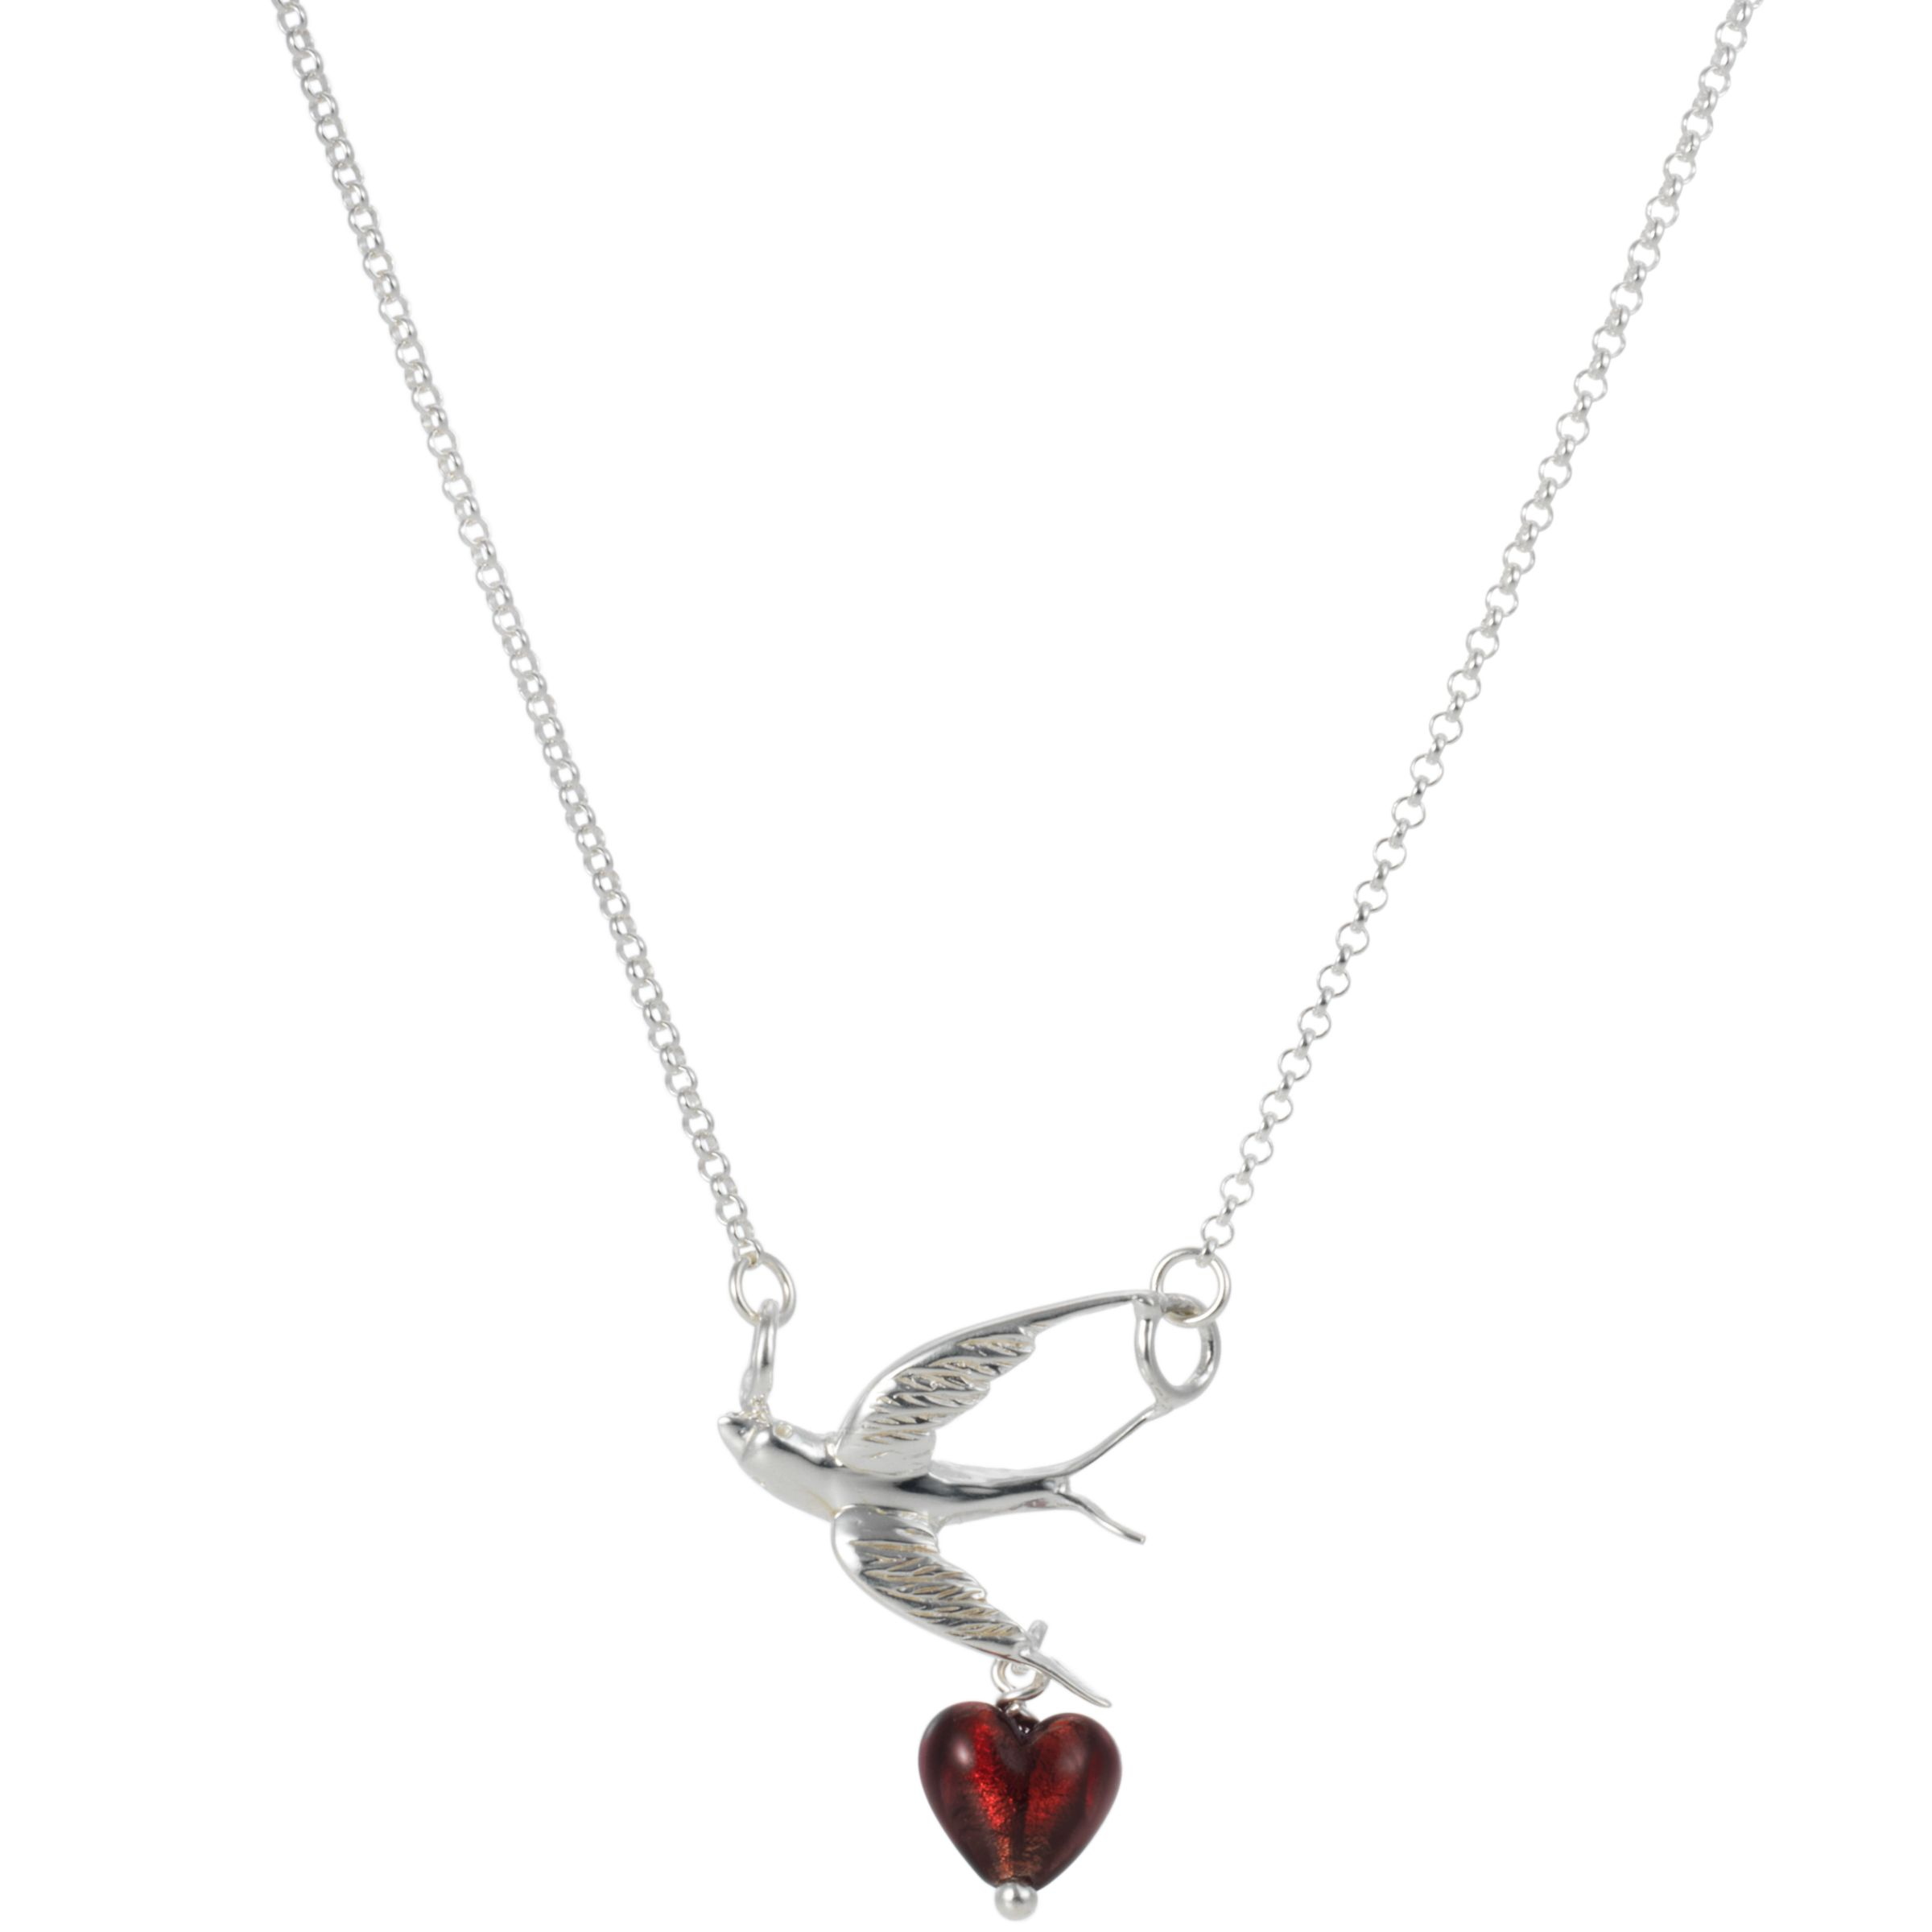 Martick Swallow and Cranberry Murano Heart Pendant Necklace